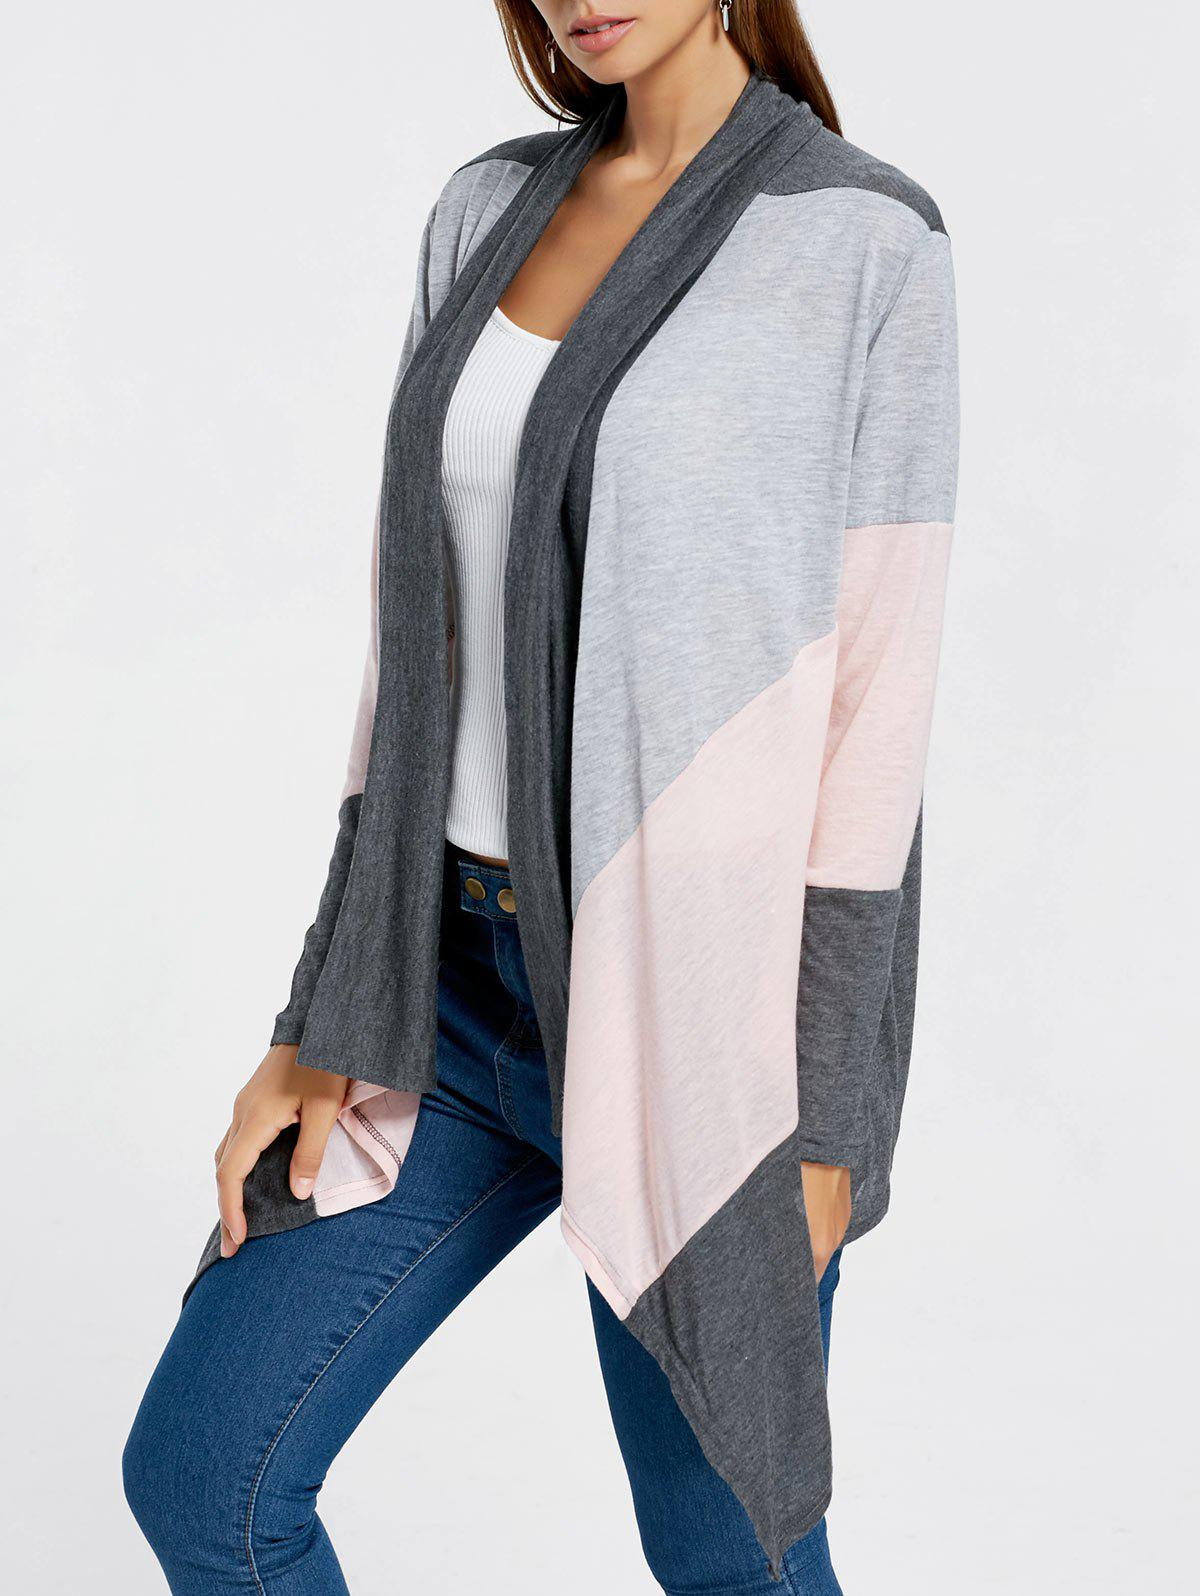 Color Block Drape Front Longline CardiganWOMEN<br><br>Size: L; Color: GRAY; Type: Cardigans; Material: Acrylic,Polyester; Sleeve Length: Full; Collar: Collarless; Style: Fashion; Pattern Type: Solid; Season: Fall; Weight: 0.3000kg; Package Contents: 1 x Cardigan;